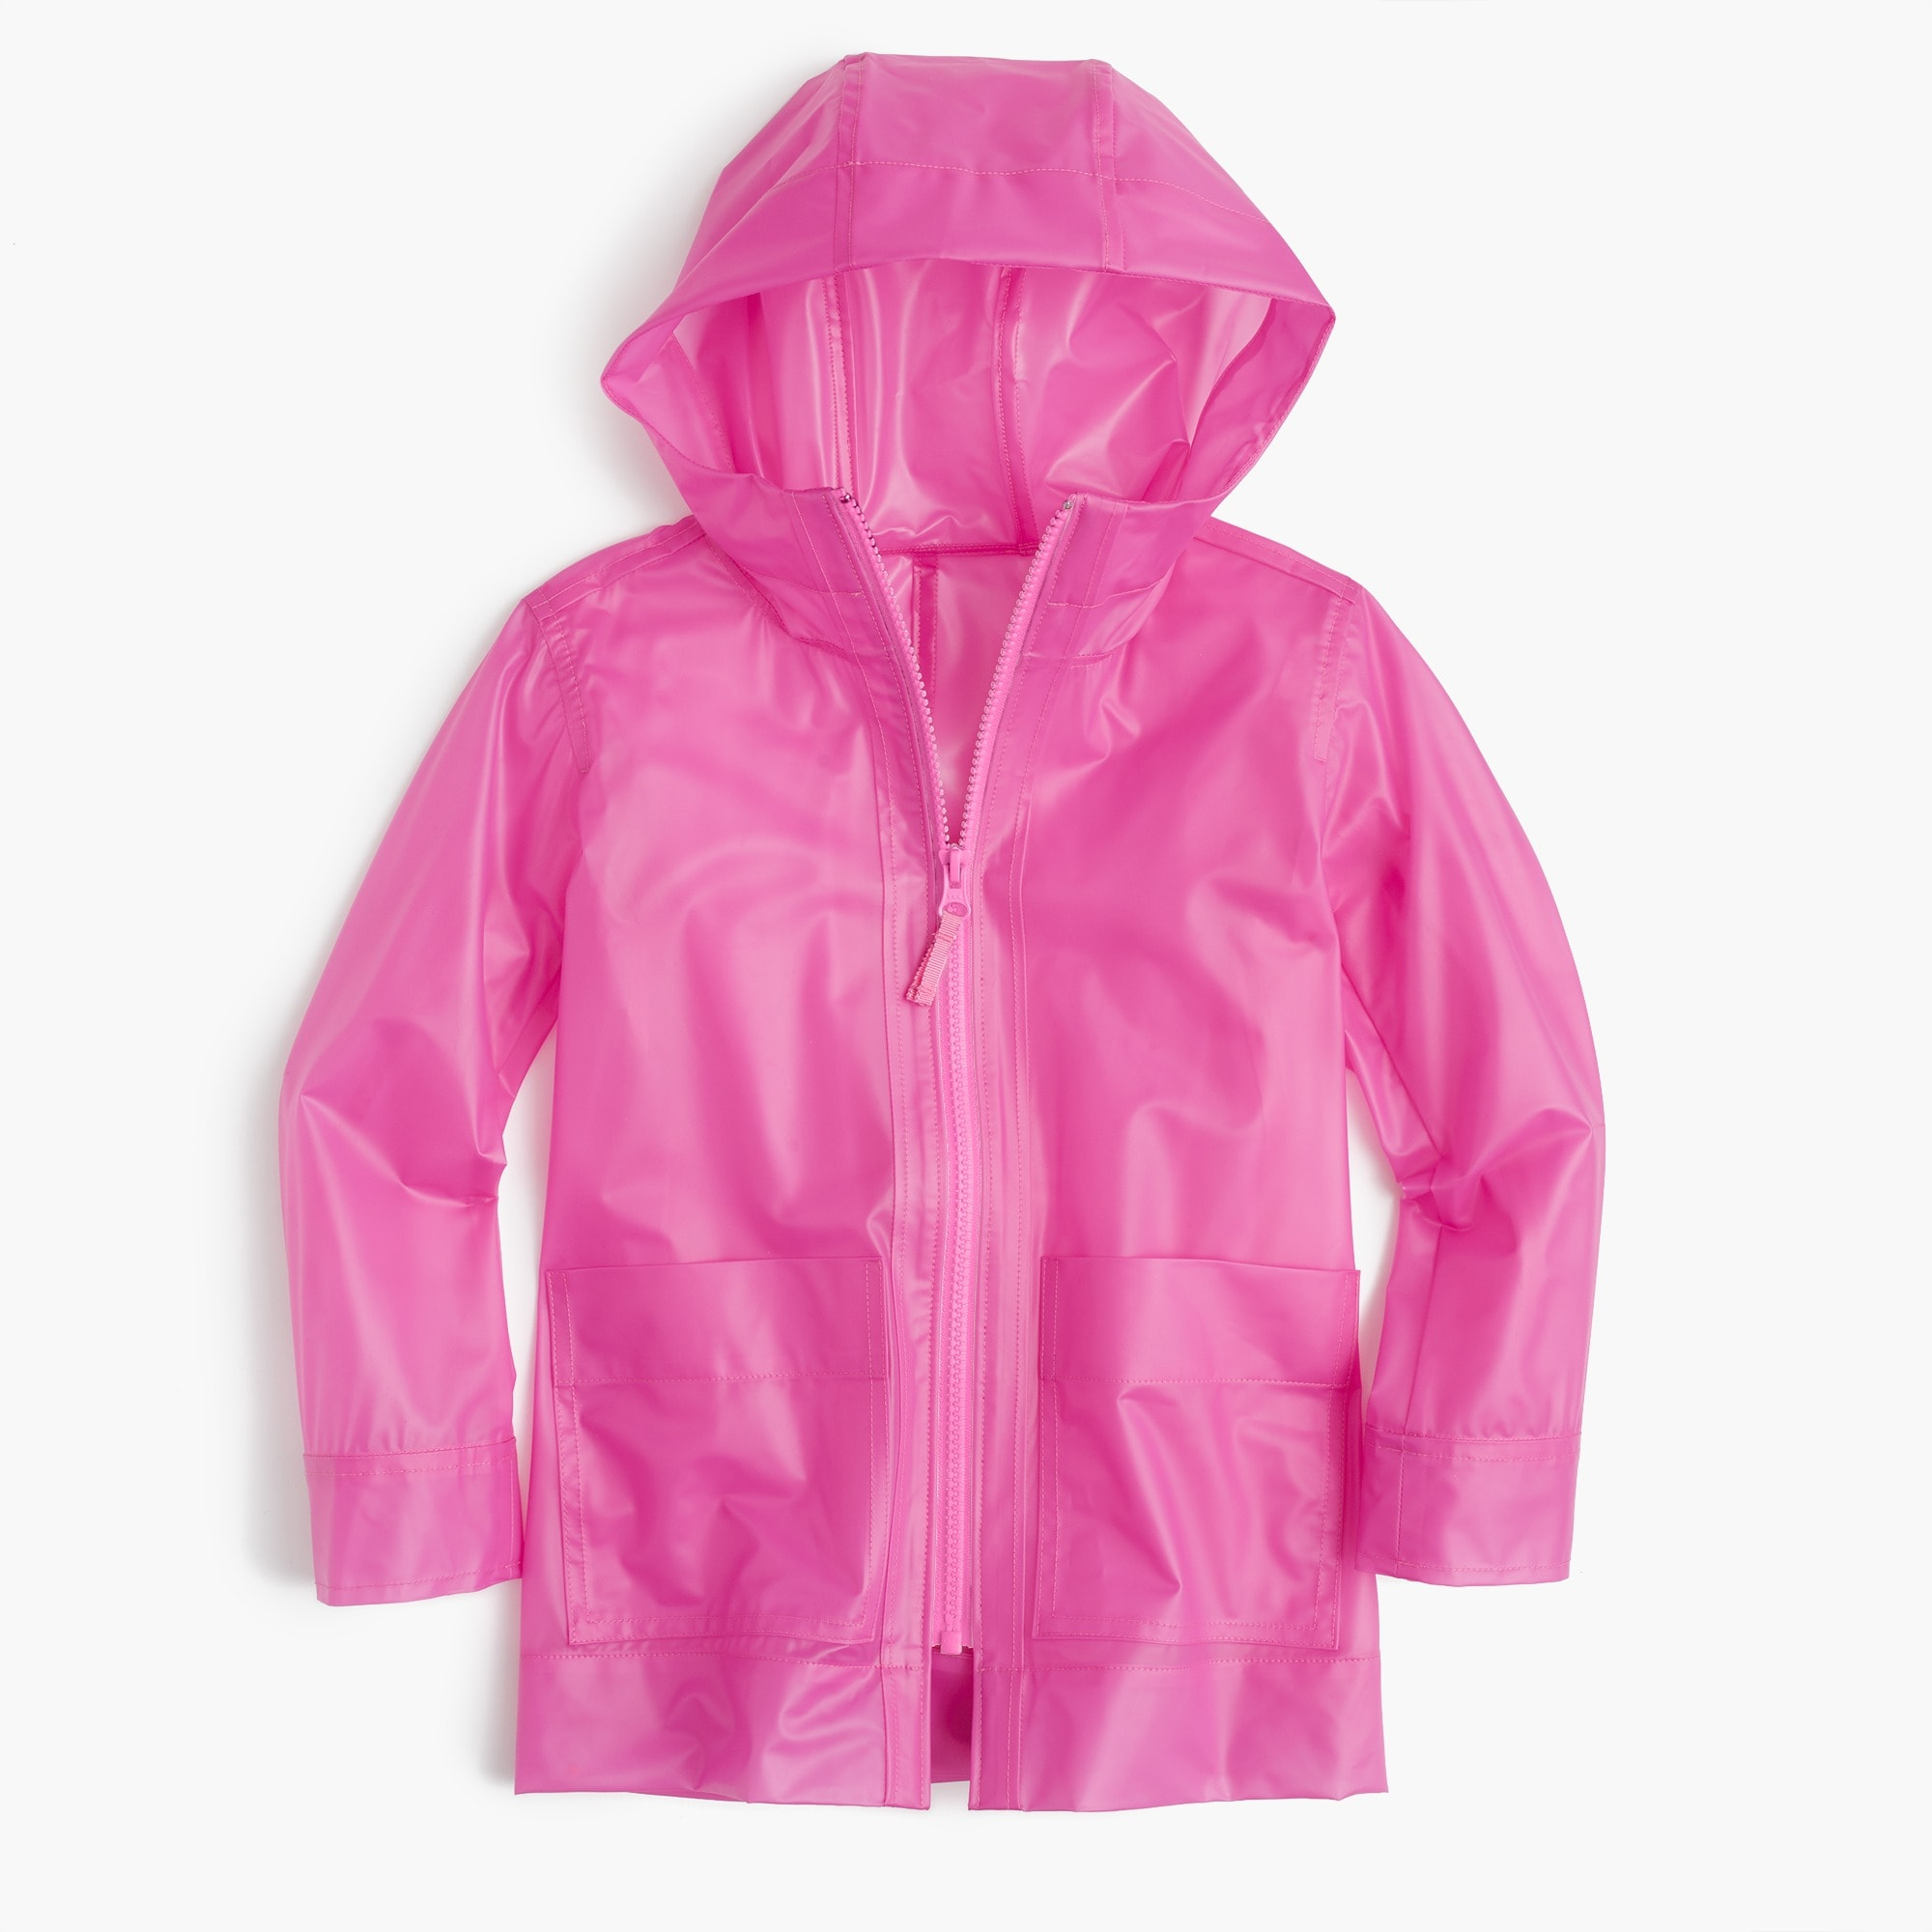 Kids' rain jacket girl coats & jackets c